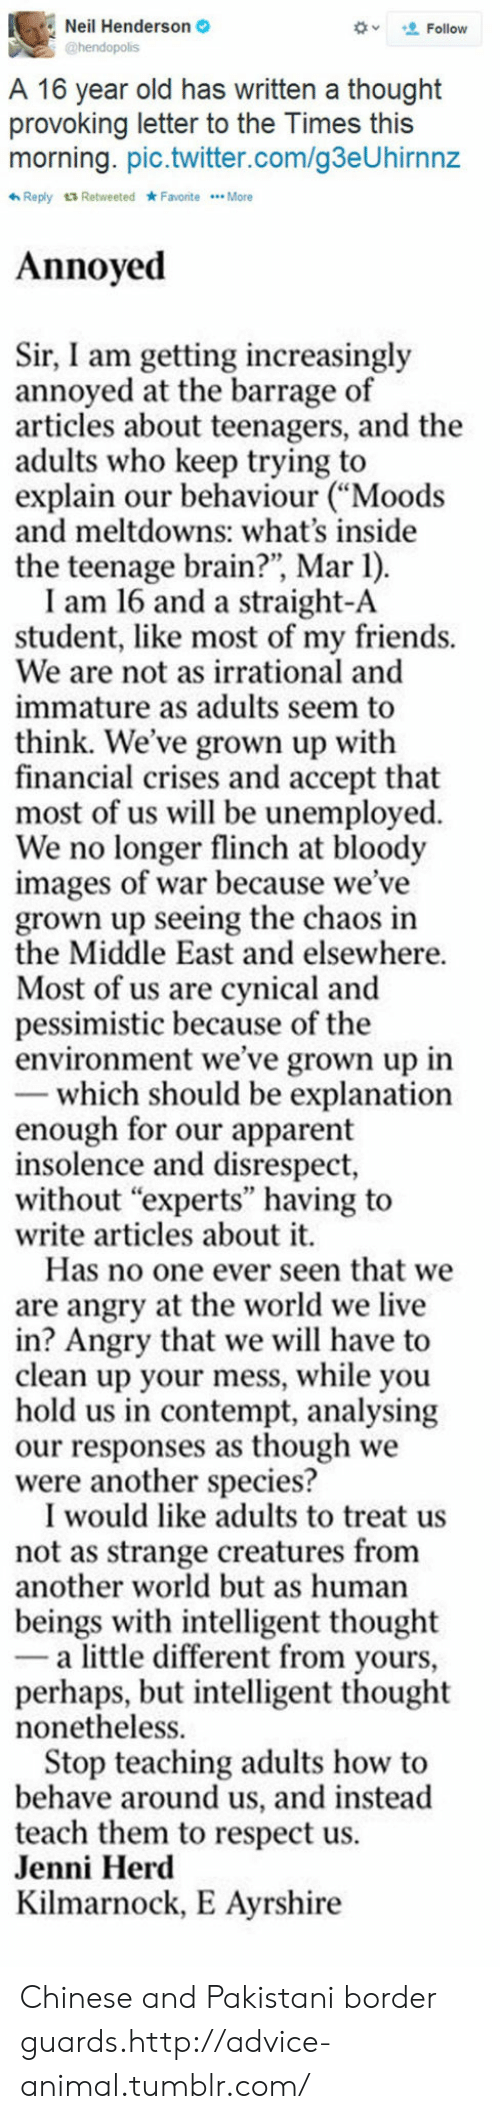 """insolence: Neil Henderson  Follow  @hendopolis  A 16 year old has written a thought  provoking letter to the Times this  morning. pic.twitter.com/g3eUhirnnz  Reply tRetweetedFavonte. More  Annoyed  Sir, I am getting increasingly  annoyed at the barrage of  articles about teenagers, and the  adults who keep trying to  explain our behaviour (""""Moods  and meltdowns: what's inside  the teenage brain?"""", Mar 1)  I am 16 and a straight-A  student, like most of my friends.  We are not as irrational and  immature as adults seem to  think. We've grown up with  financial crises and accept that  most of us will be unemployed.  We no longer flinch at bloody  images of war because we've  grown up seeing the chaos in  the Middle East and elsewhere.  Most of us are cynical and  pessimistic because of the  environment we've grown up in  which should be explanation  enough for our apparent  insolence and disrespect,  without """"experts"""" having to  write articles about it.  Has no one ever seen that we  are angry at the world we live  in? Angry that we will have to  clean up your mess, while you  hold us in contempt, analysing  our responses as though we  were another species?  I would like adults to treat us  not as strange creatures from  another world but as human  beings with intelligent thought  a little different from yours,  perhaps, but intelligent thought  nonetheless.  Stop teaching adults how to  behave around us, and instead  teach them to respect us.  Jenni Herd  Kilmarnock, E Ayrshire Chinese and Pakistani border guards.http://advice-animal.tumblr.com/"""